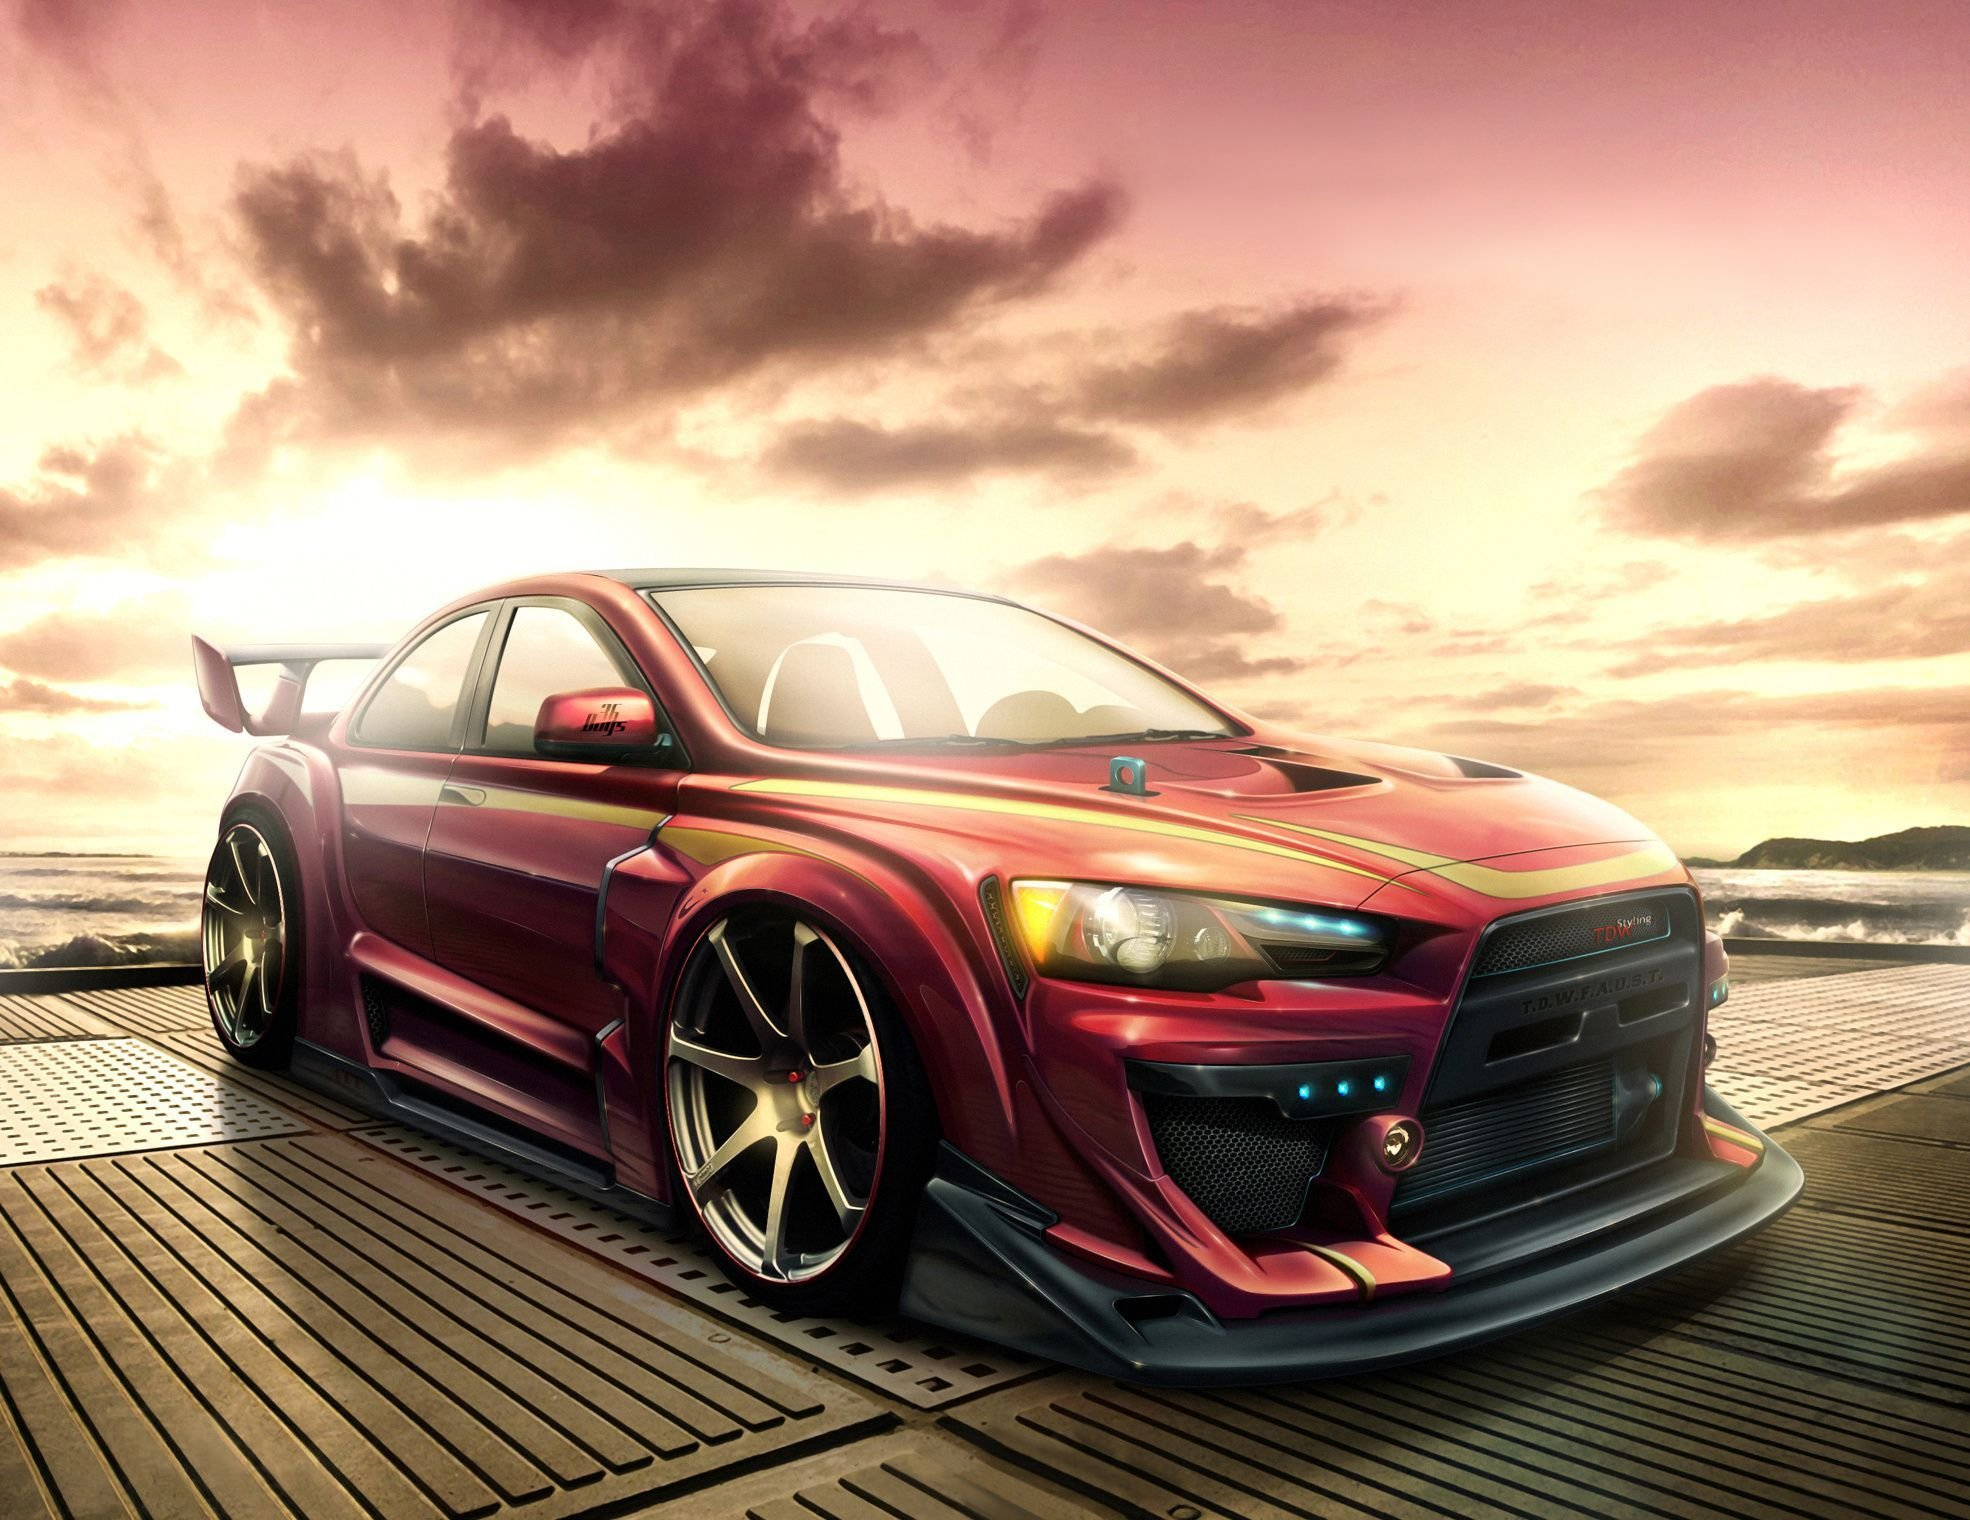 Latest Download Wallpaper Mitsubishi Lancer Evo X Cars Free Free Download